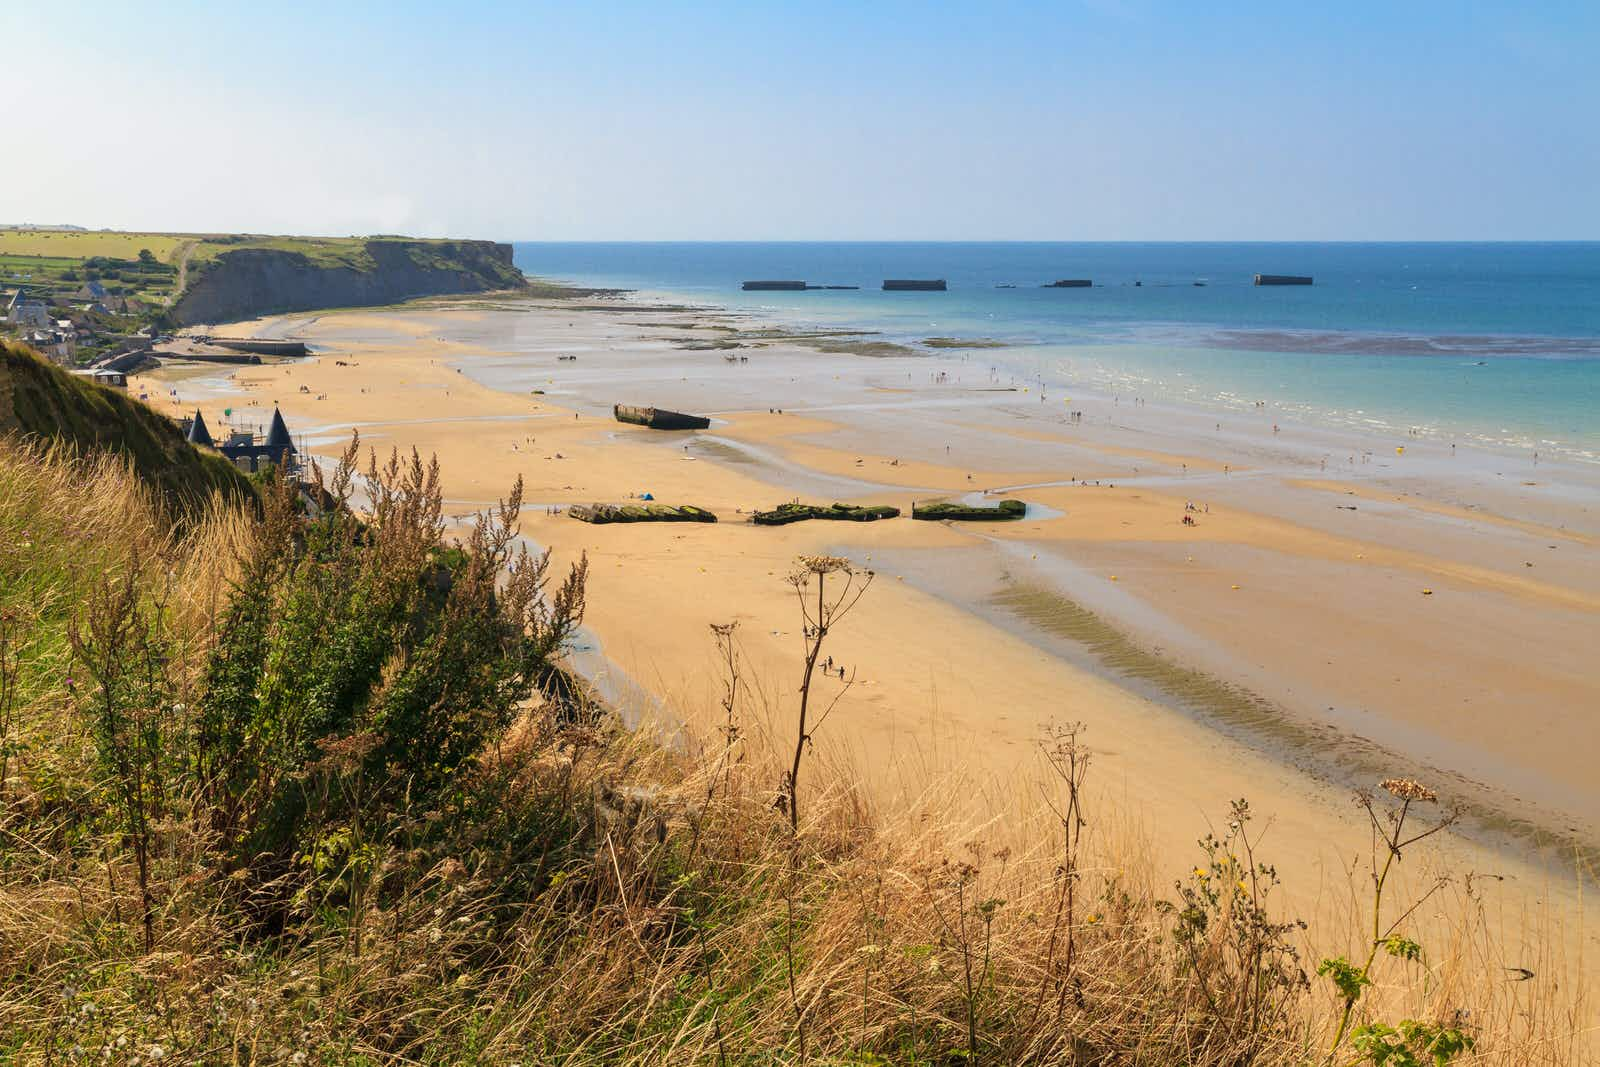 The remains of a Mulberry Harbour (artificial port) at Arromanches-les-Bains in Normandy © Bertl123 / Shutterstock